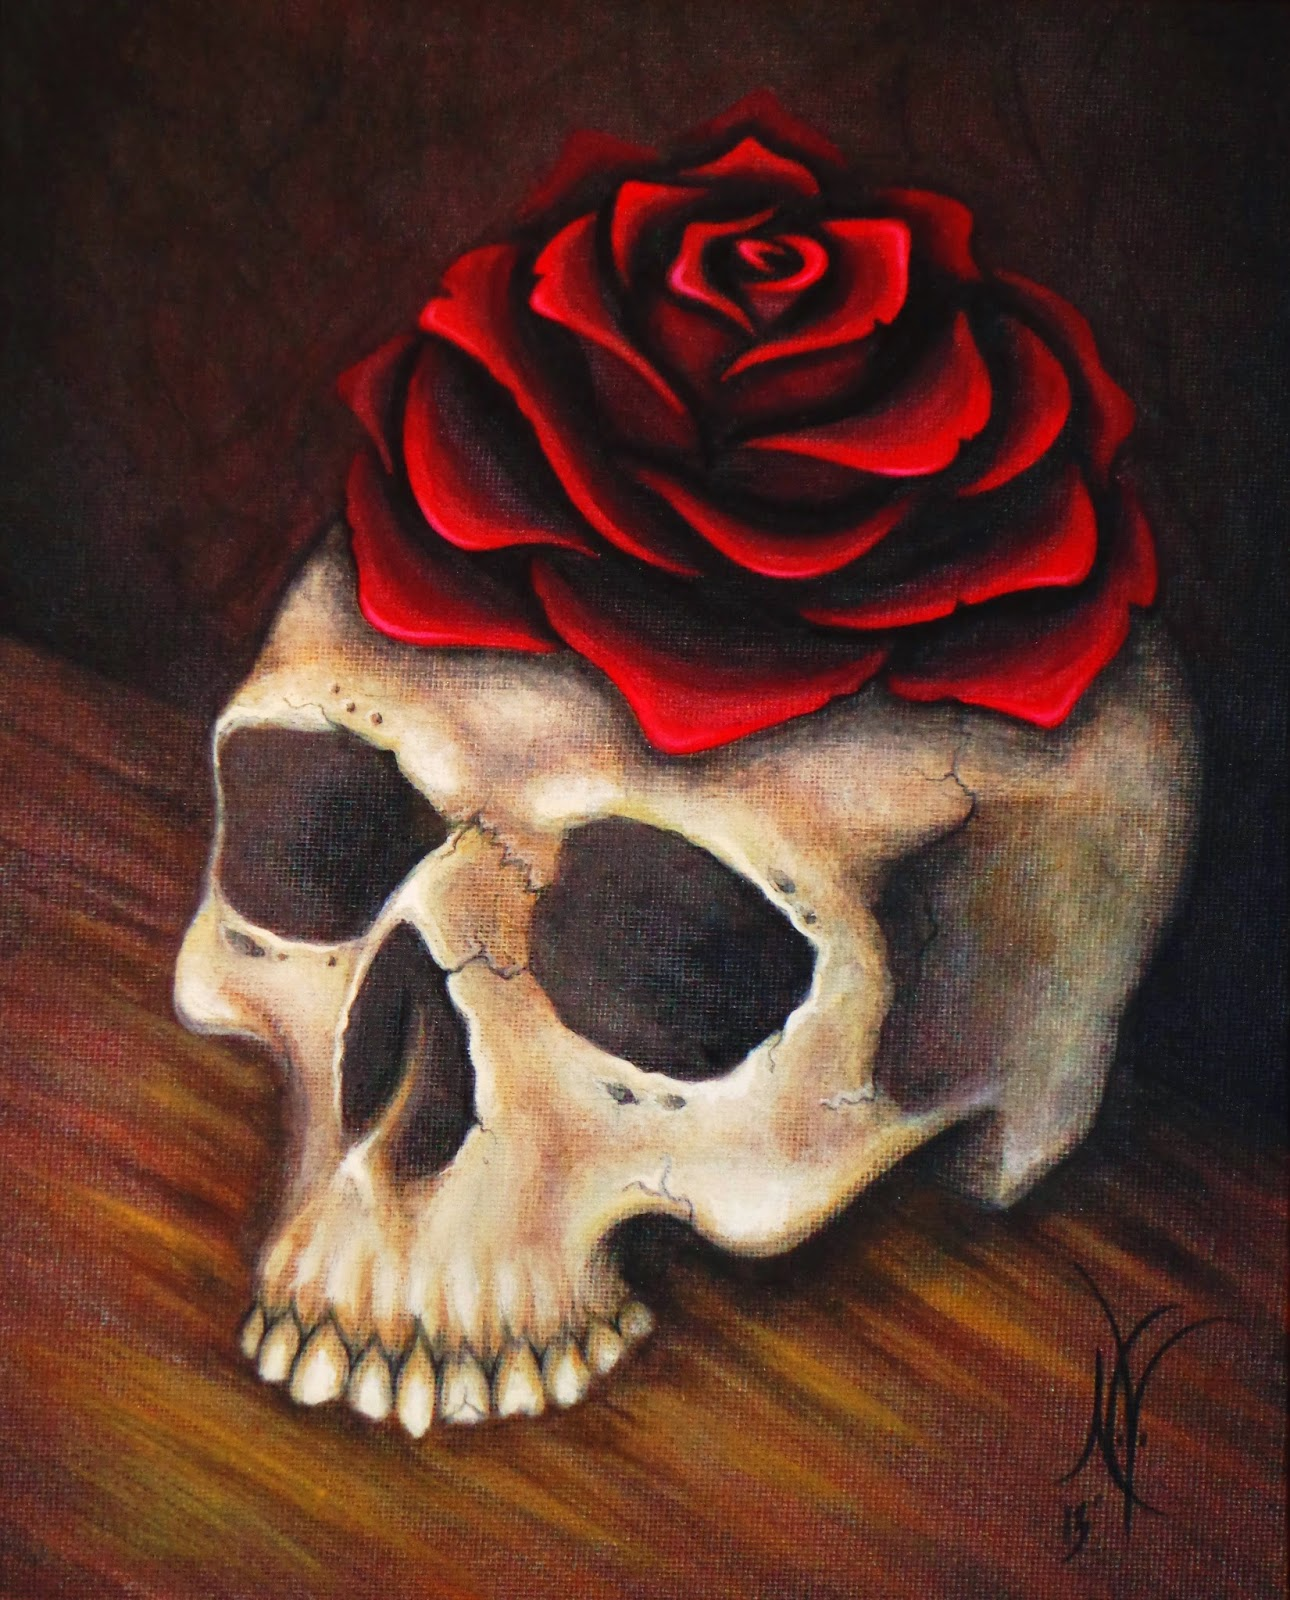 https://www.etsy.com/listing/166484010/8x10-print-gothic-fantasy-rose-skull?ref=shop_home_active_15